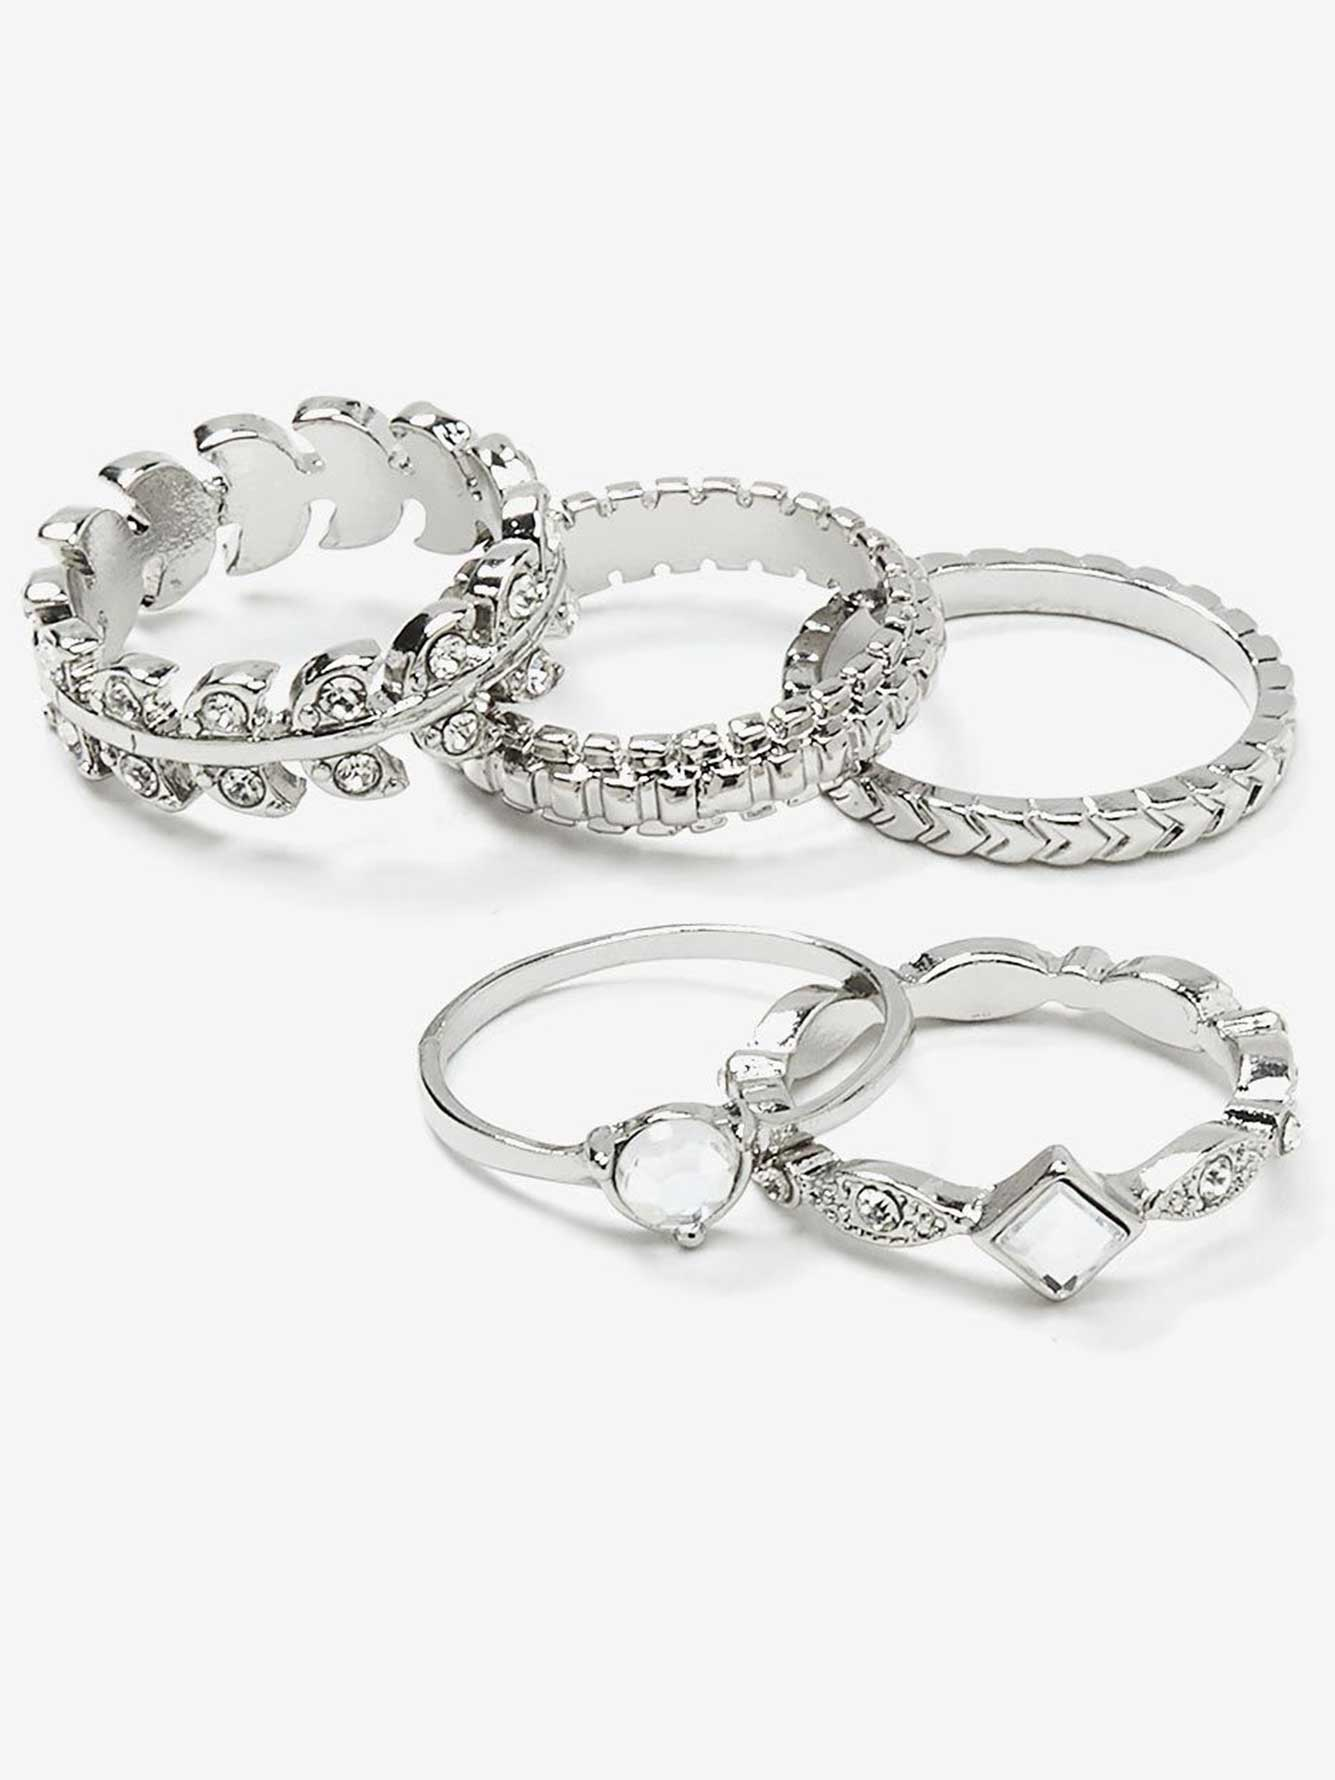 lead non rings traditional and unusual tips fashion engagement accessories beautiful alternative unique diamond engamement elle